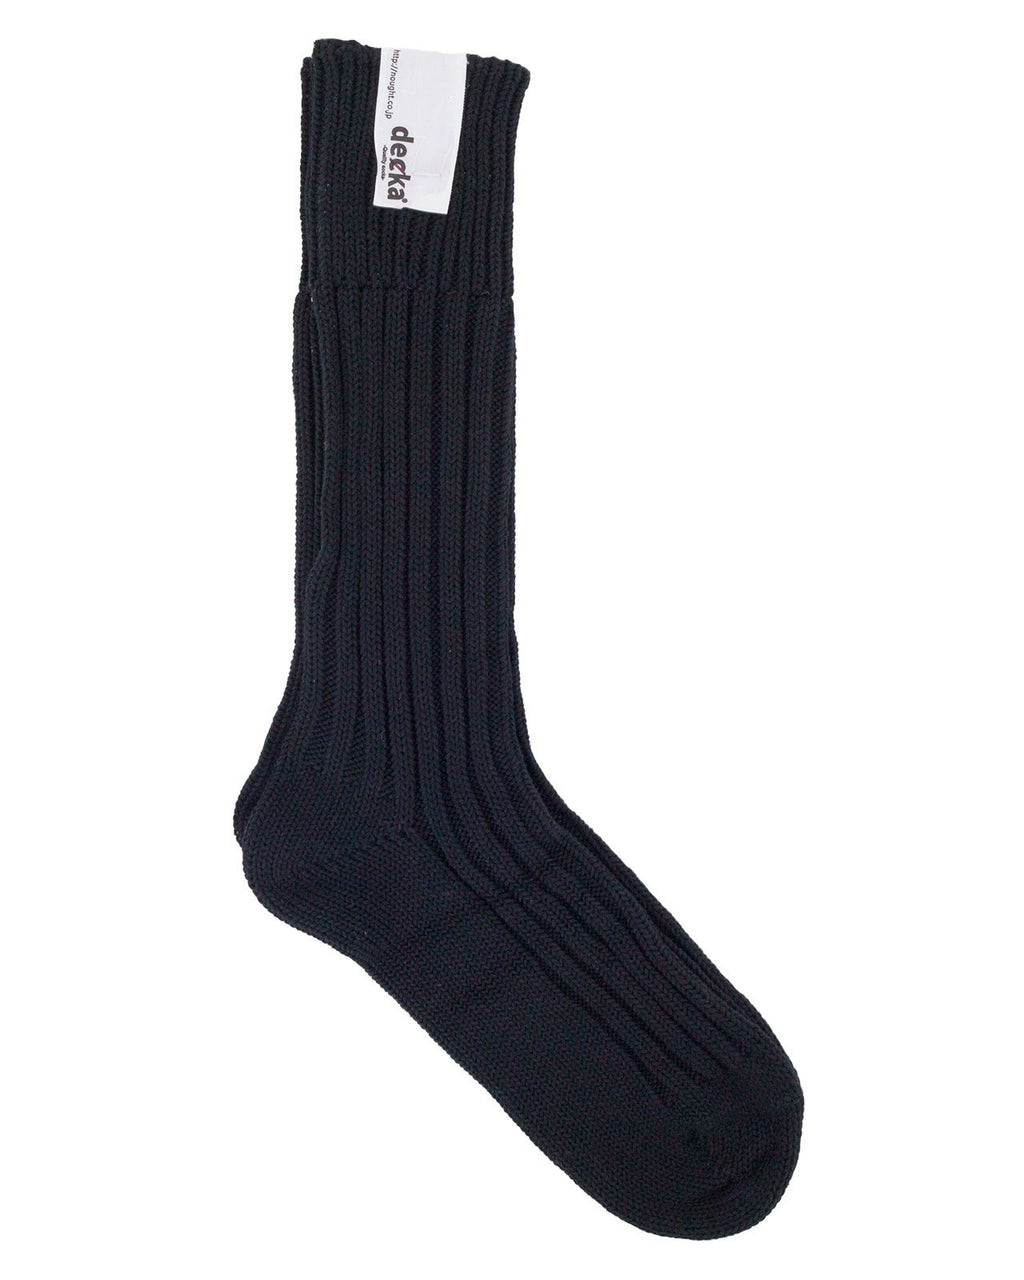 Decka Cased Heavy Weight Plain Socks, Black